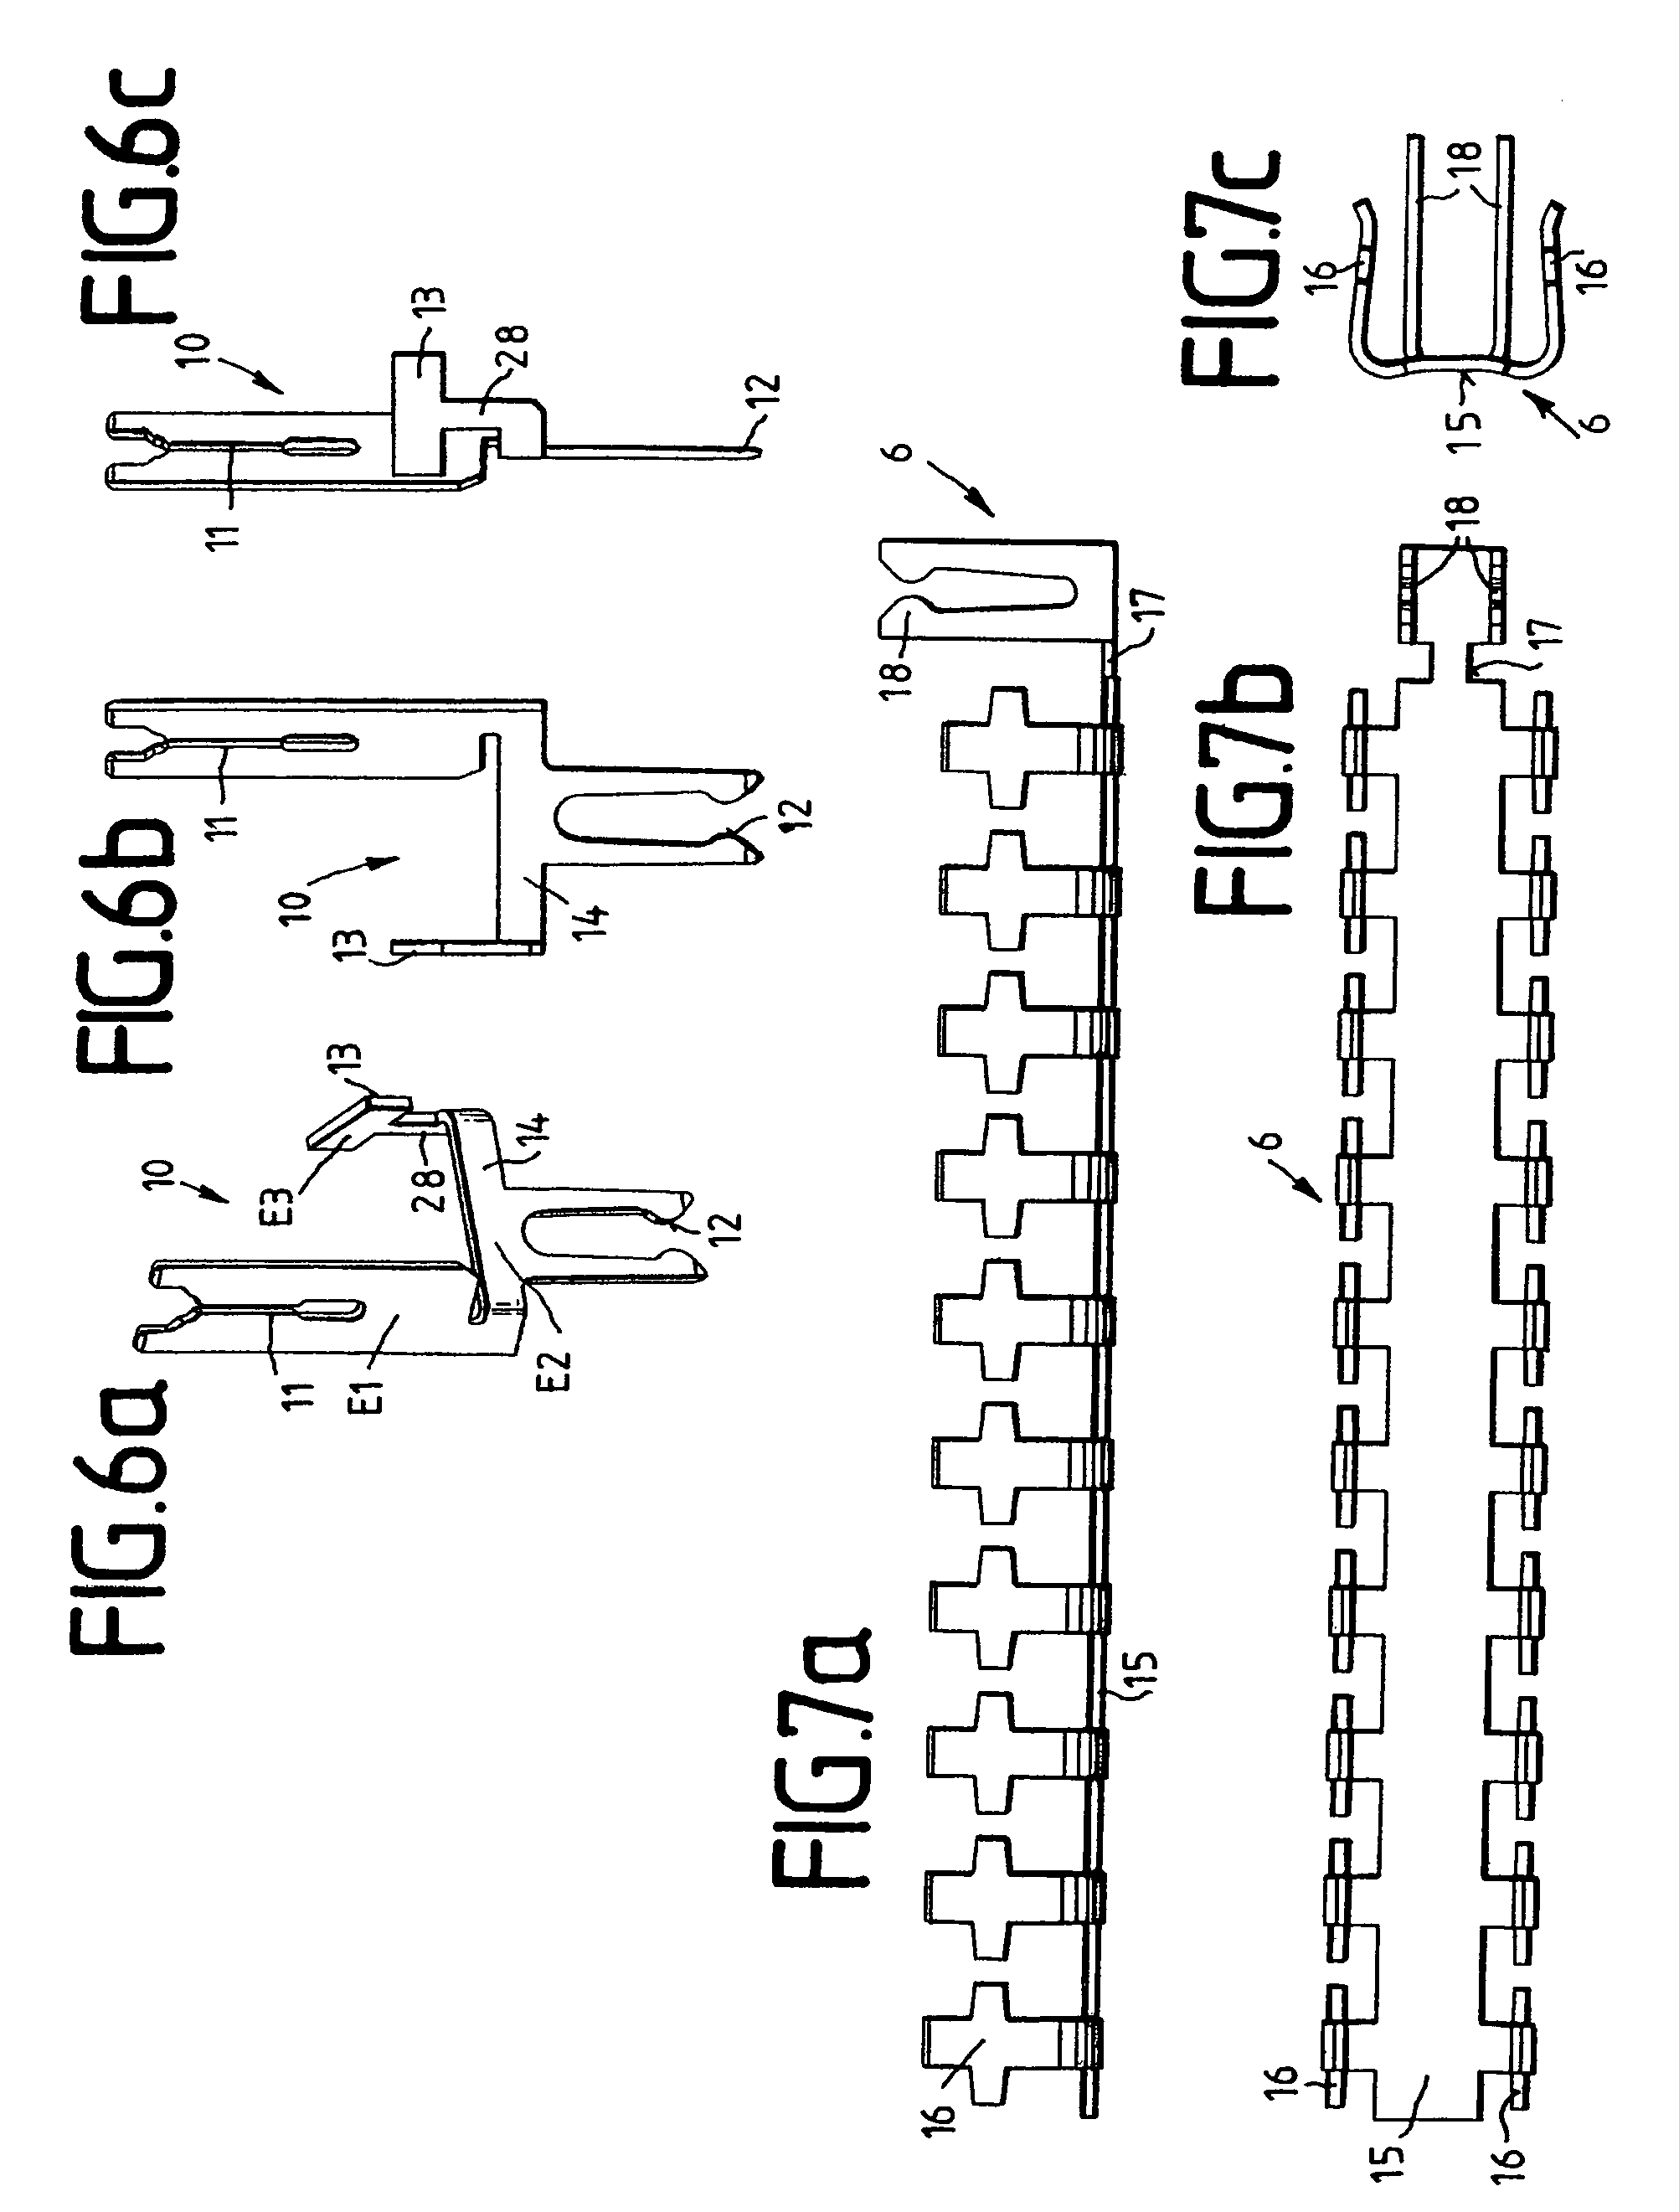 patent us7828584 - plug-type connector for printed circuit boards